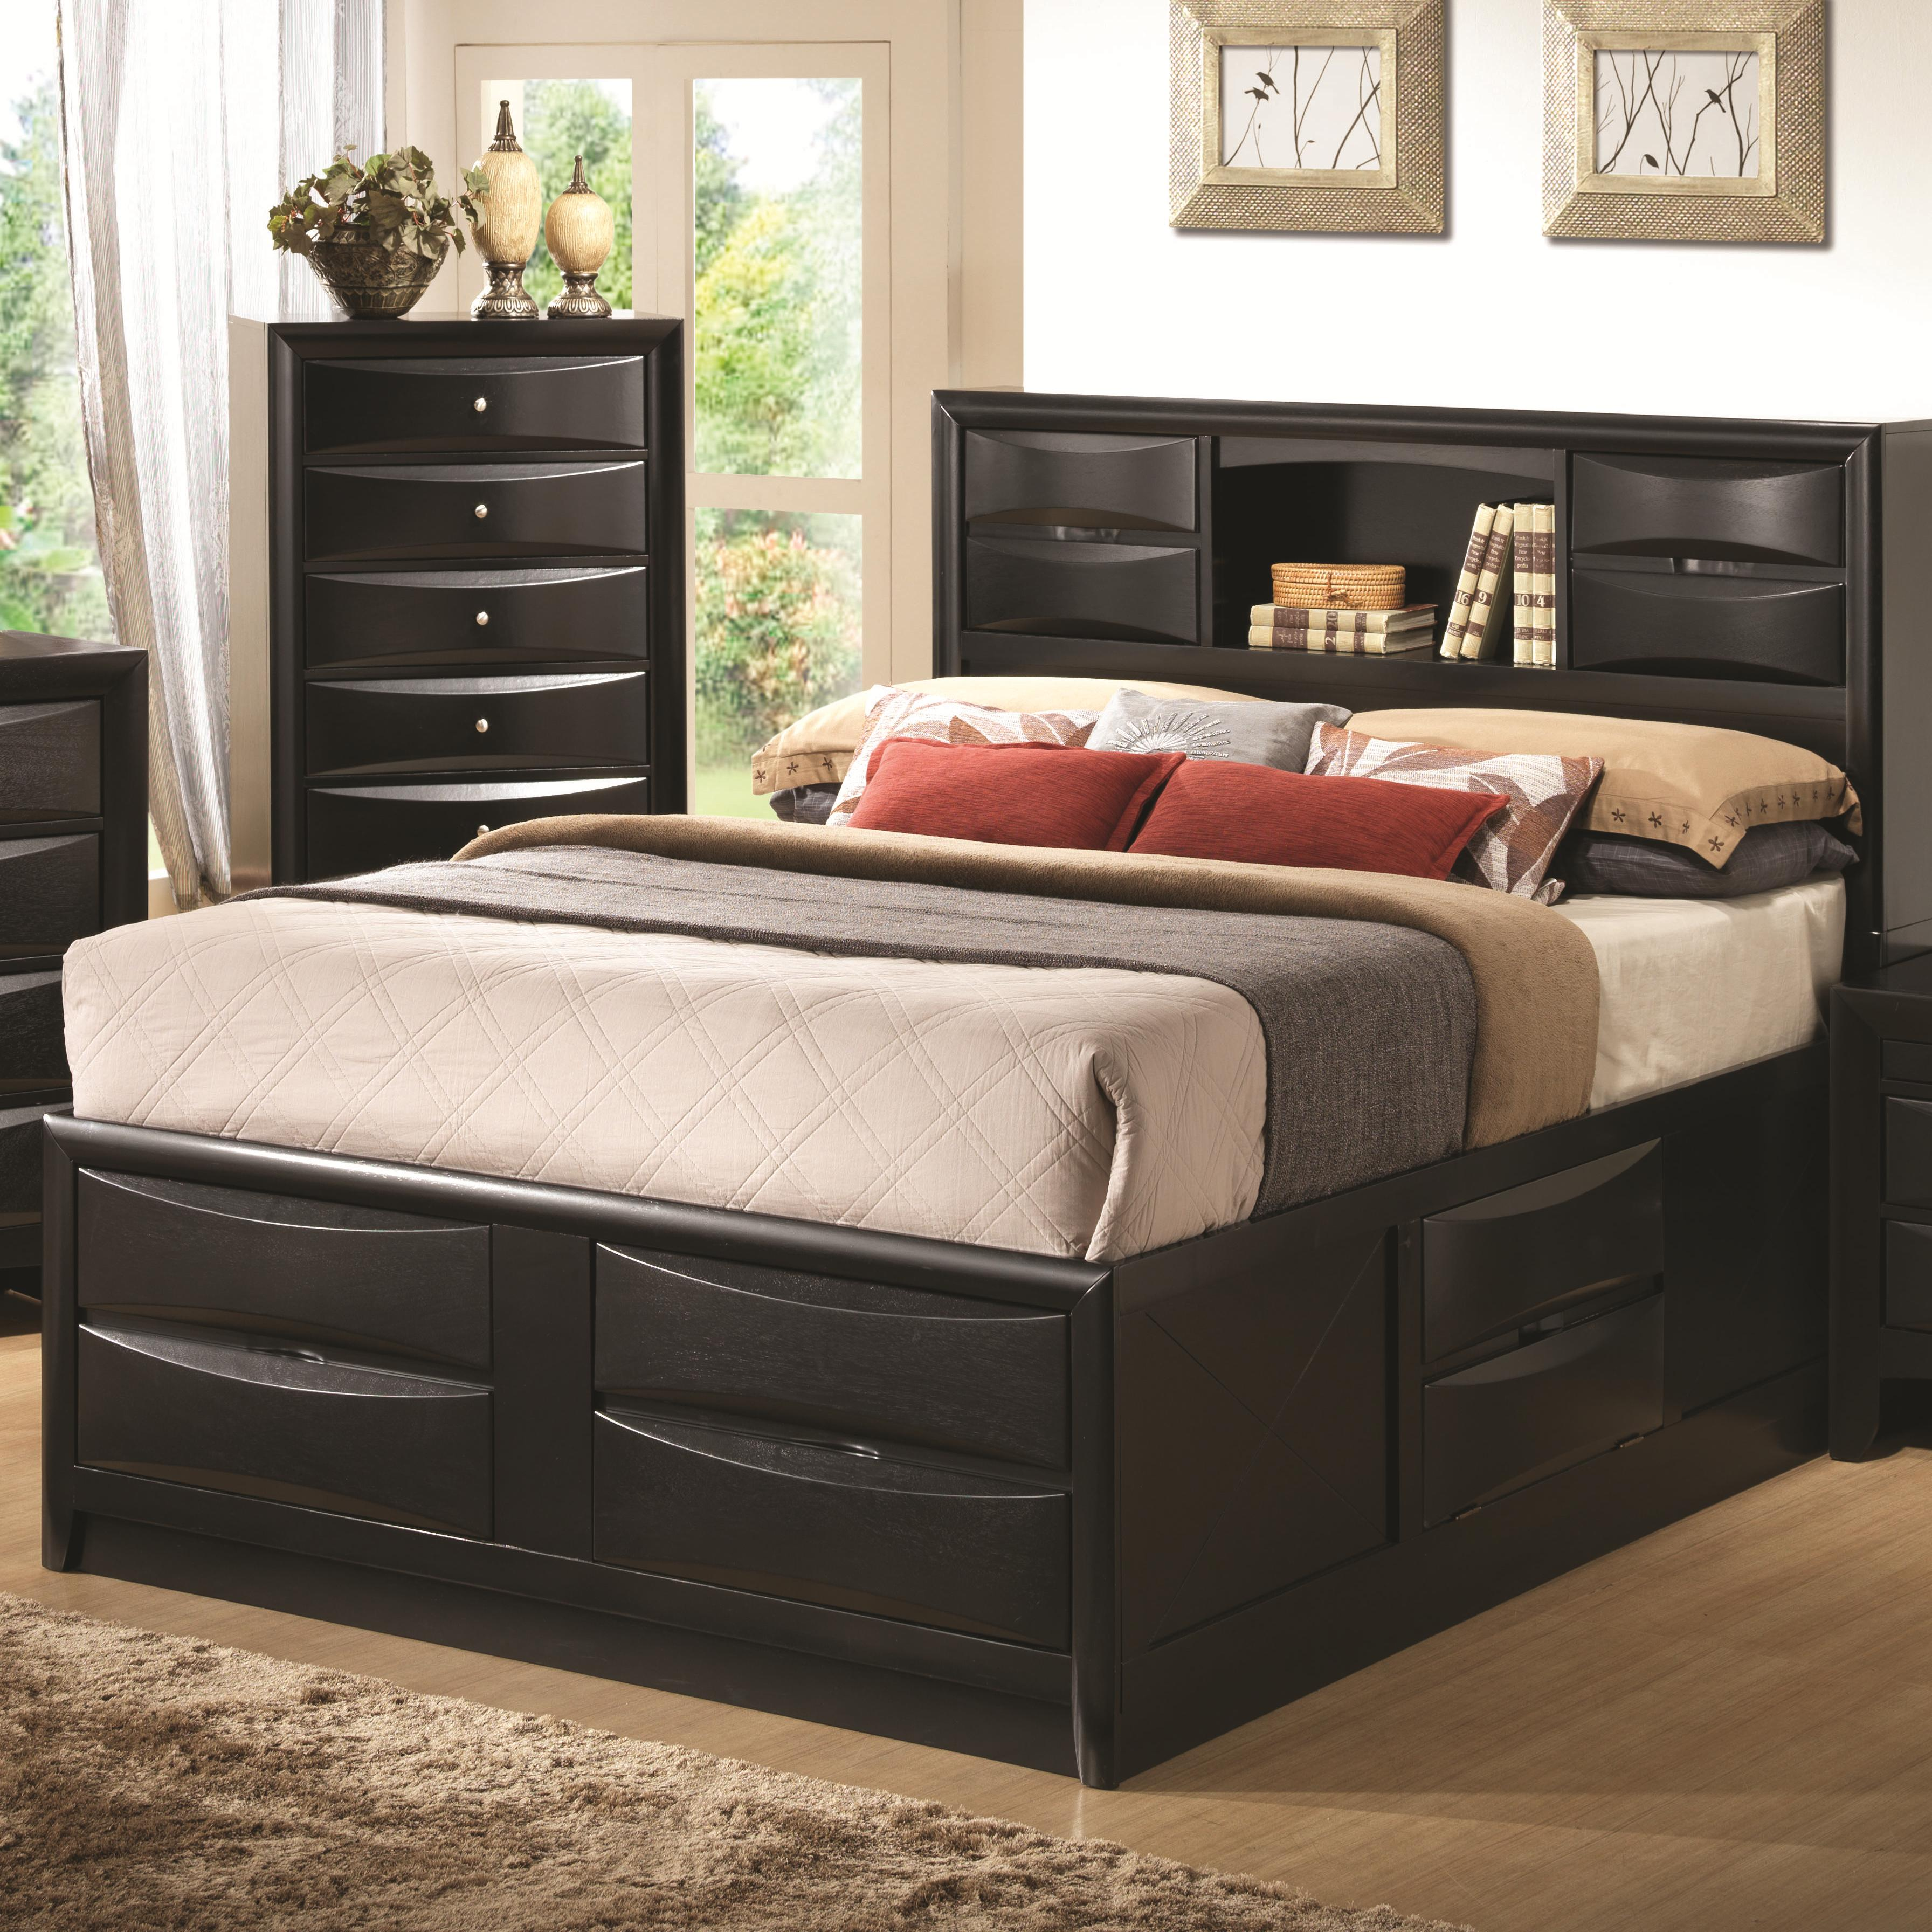 Coaster Briana Queen Contemporary Storage Bed With Bookshelf A1 Furniture Mattress Bookcase Beds